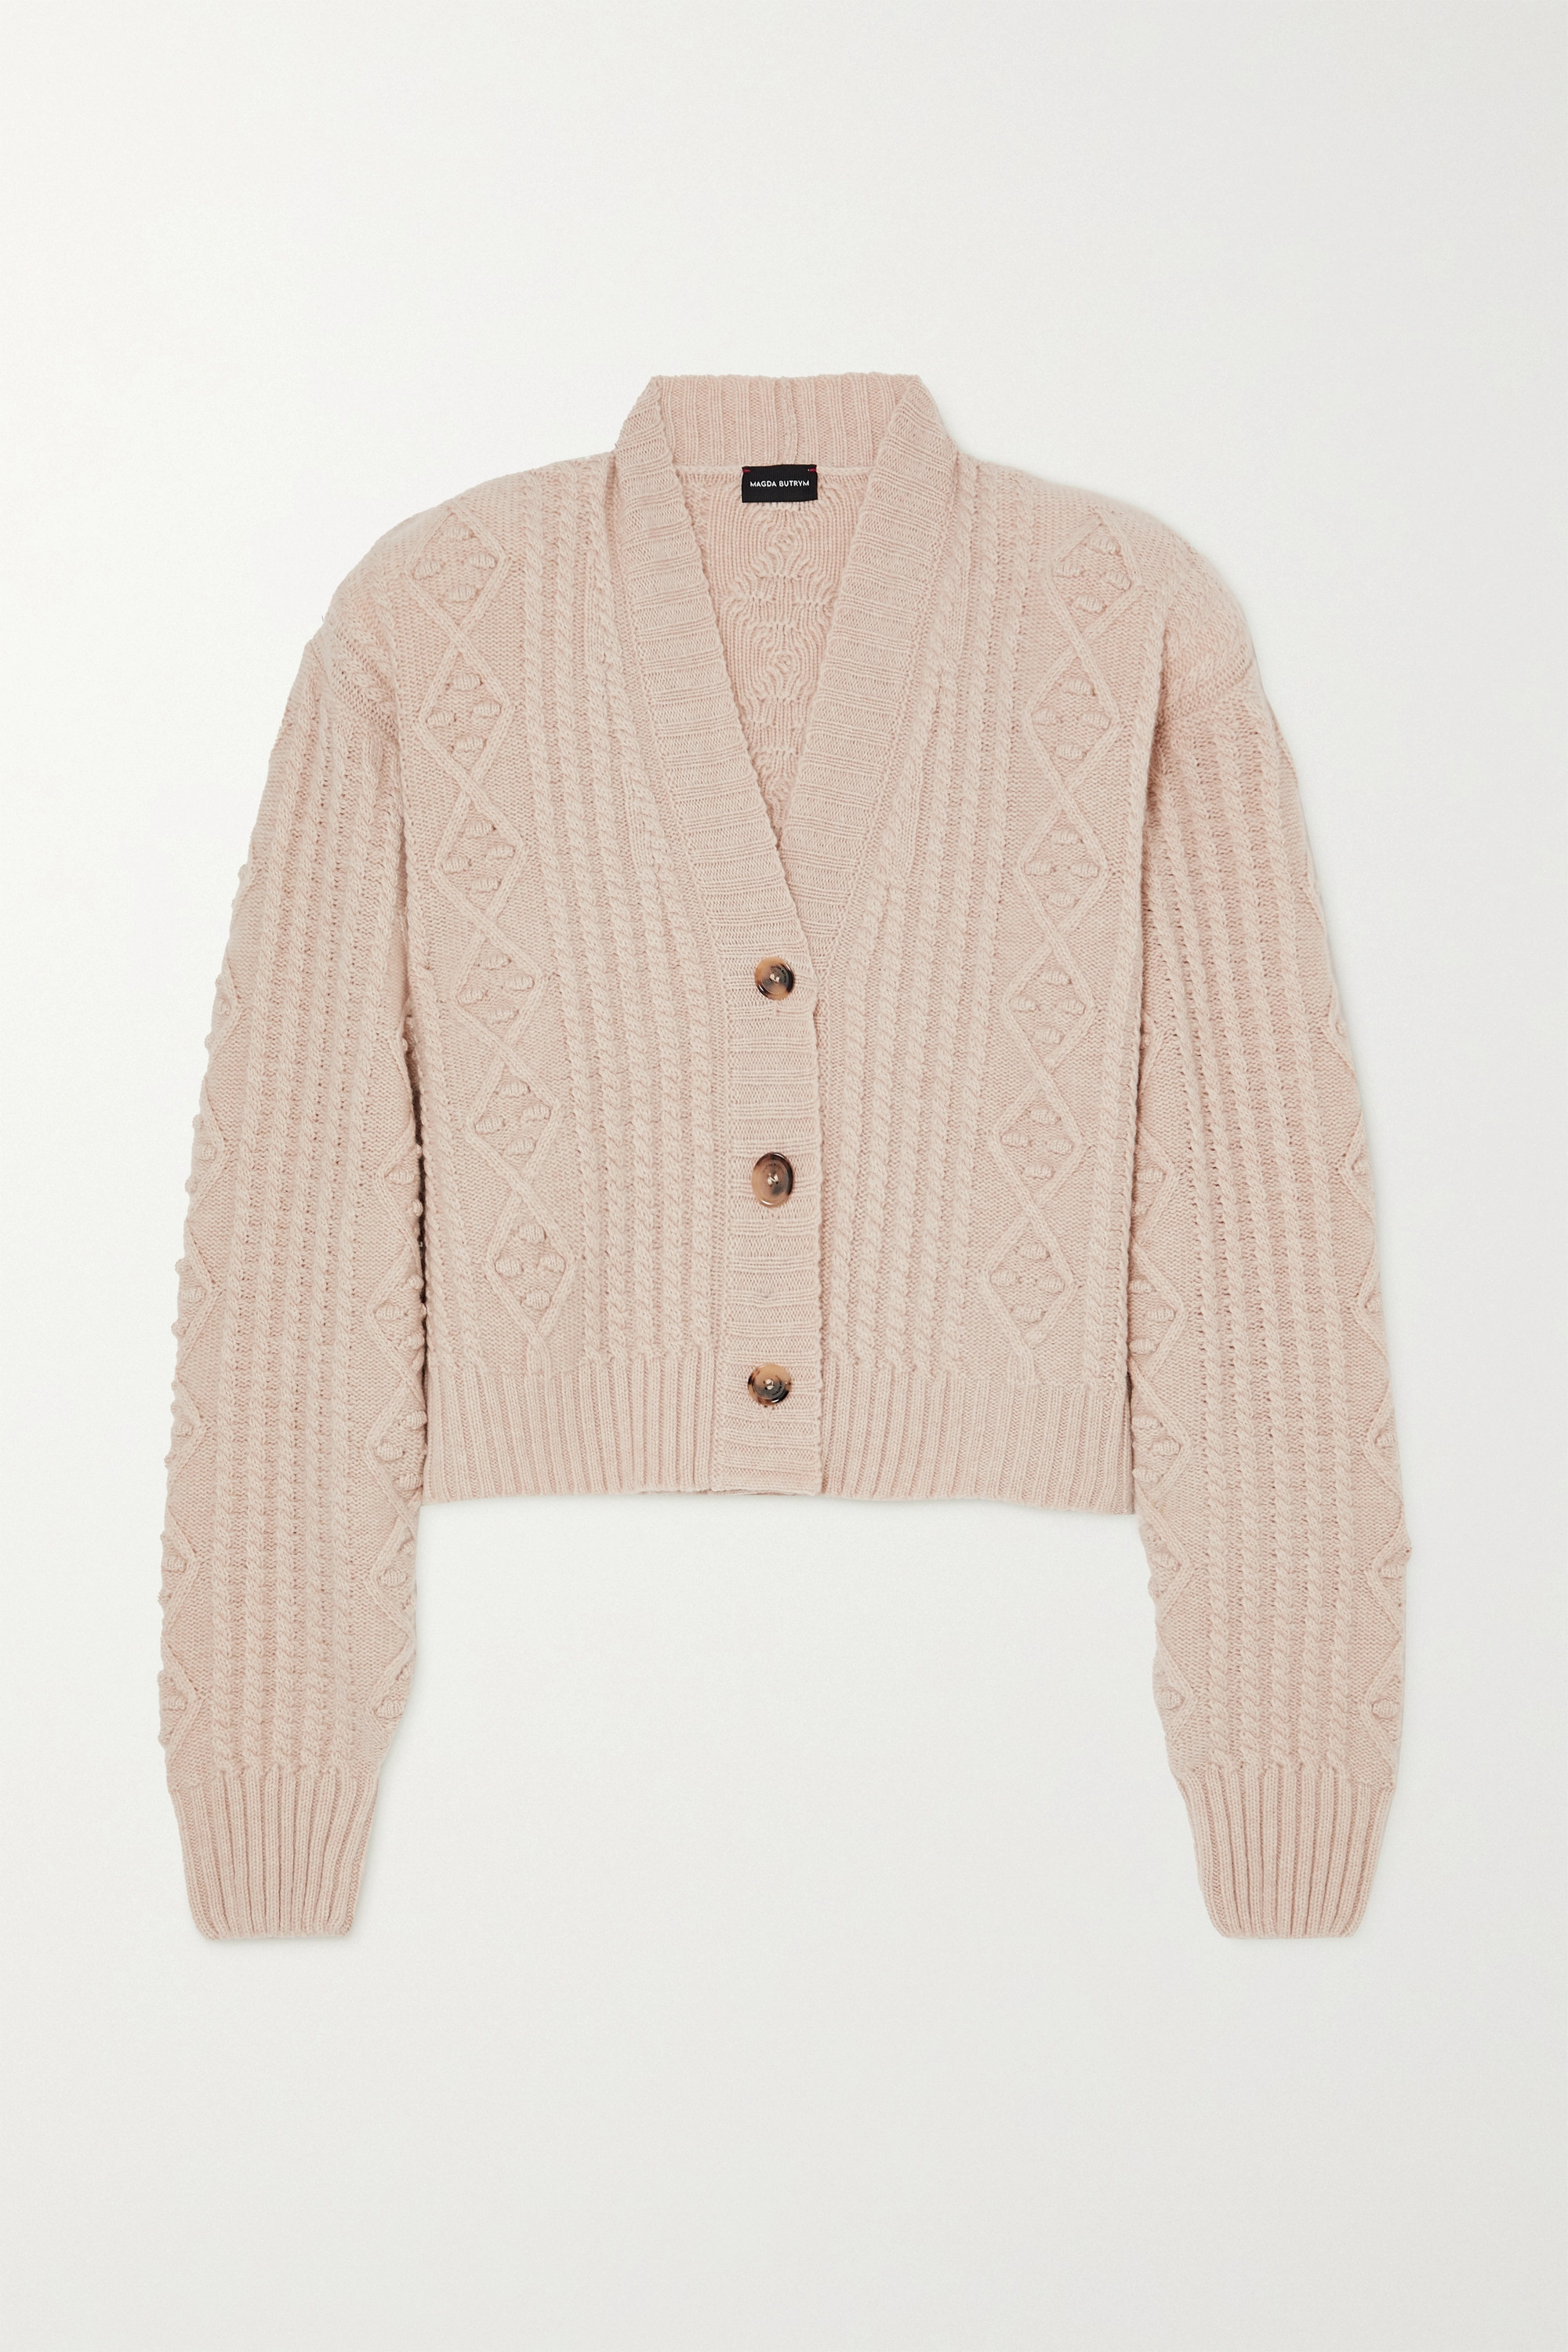 MAGDA BUTRYM Cable-knit cashmere cardigan